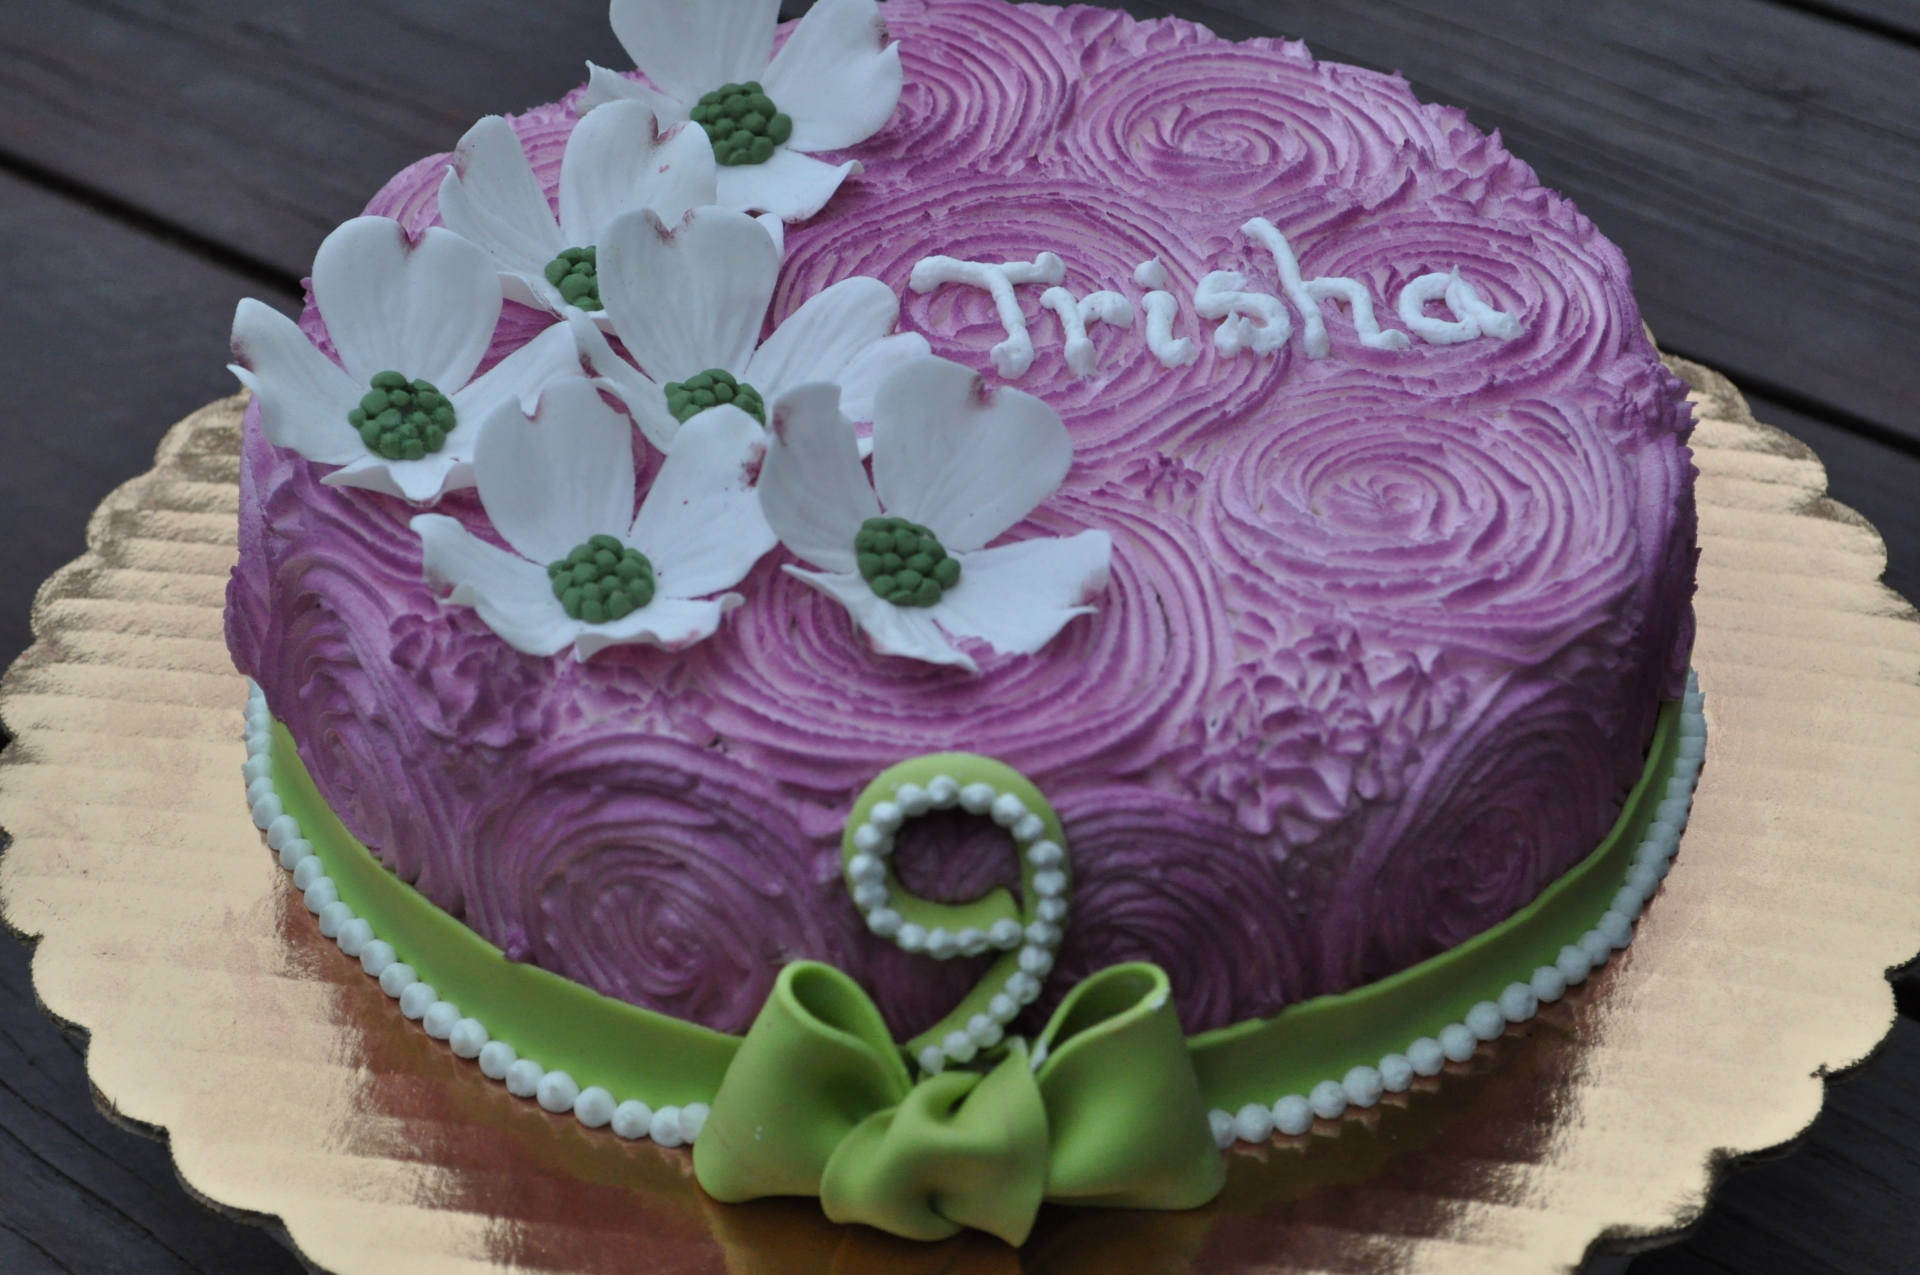 Rosettes cake, dogwood flower birthday cake